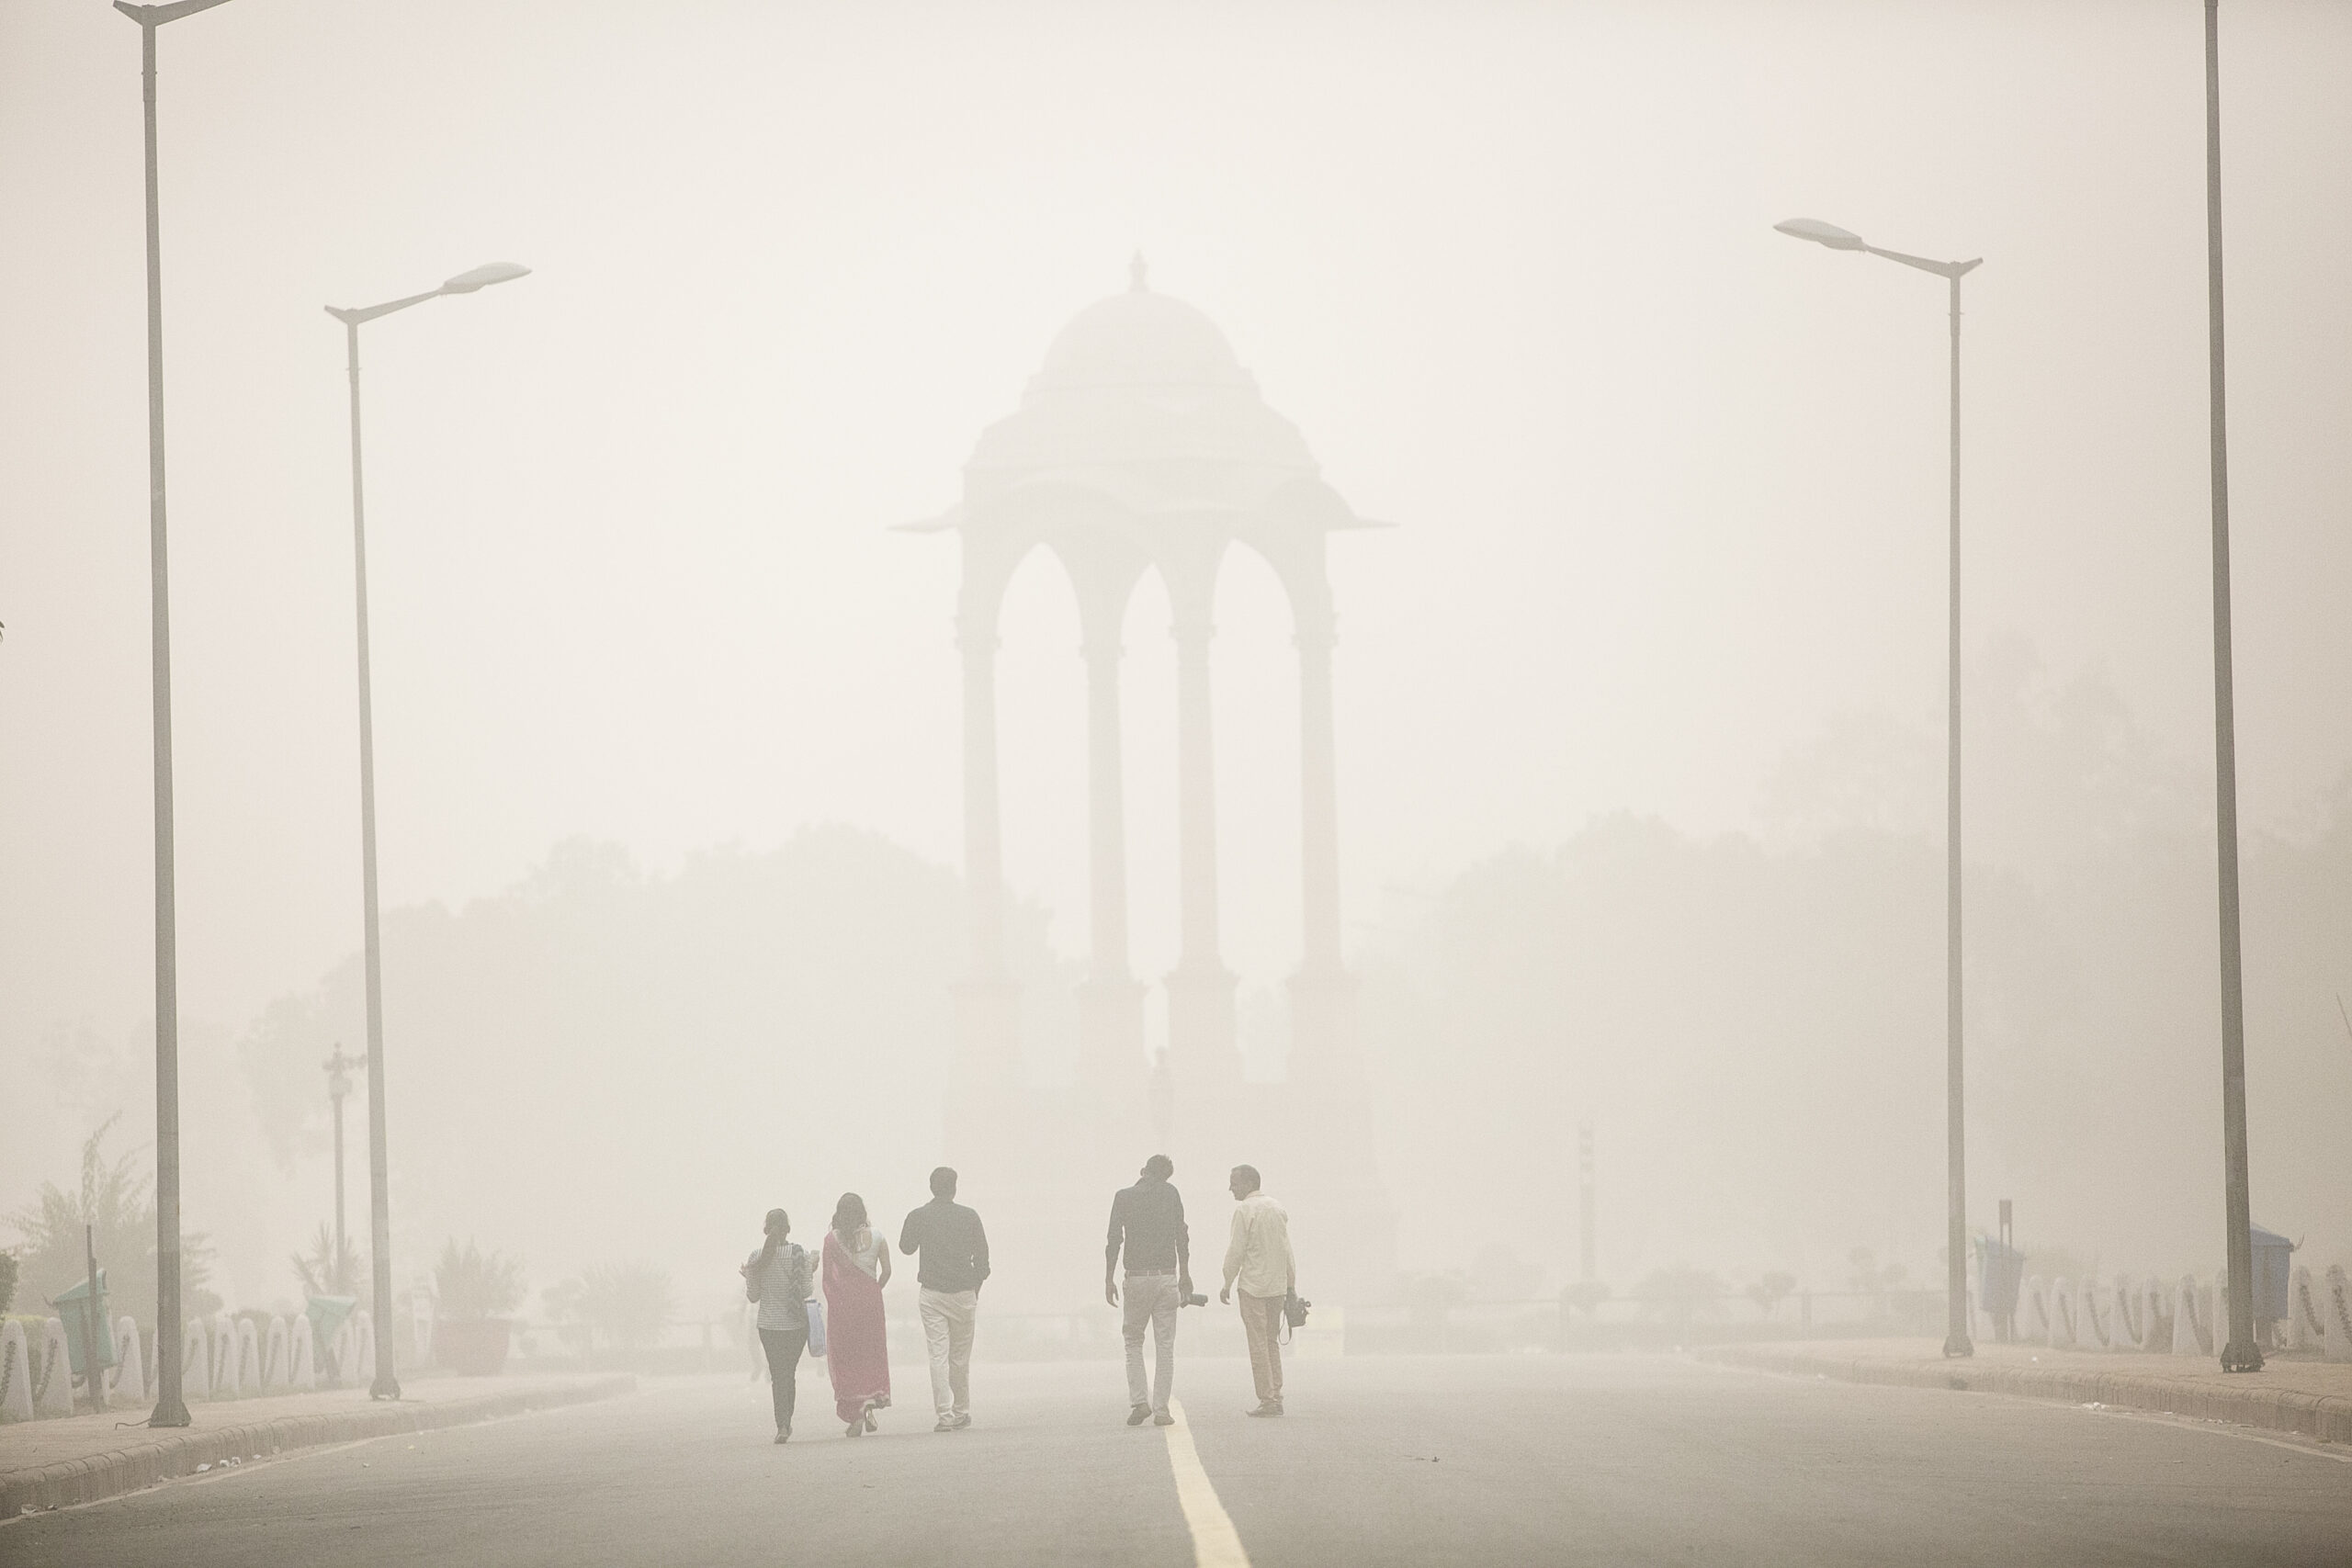 Surge in Air Pollution in Sri Lanka Blamed on India